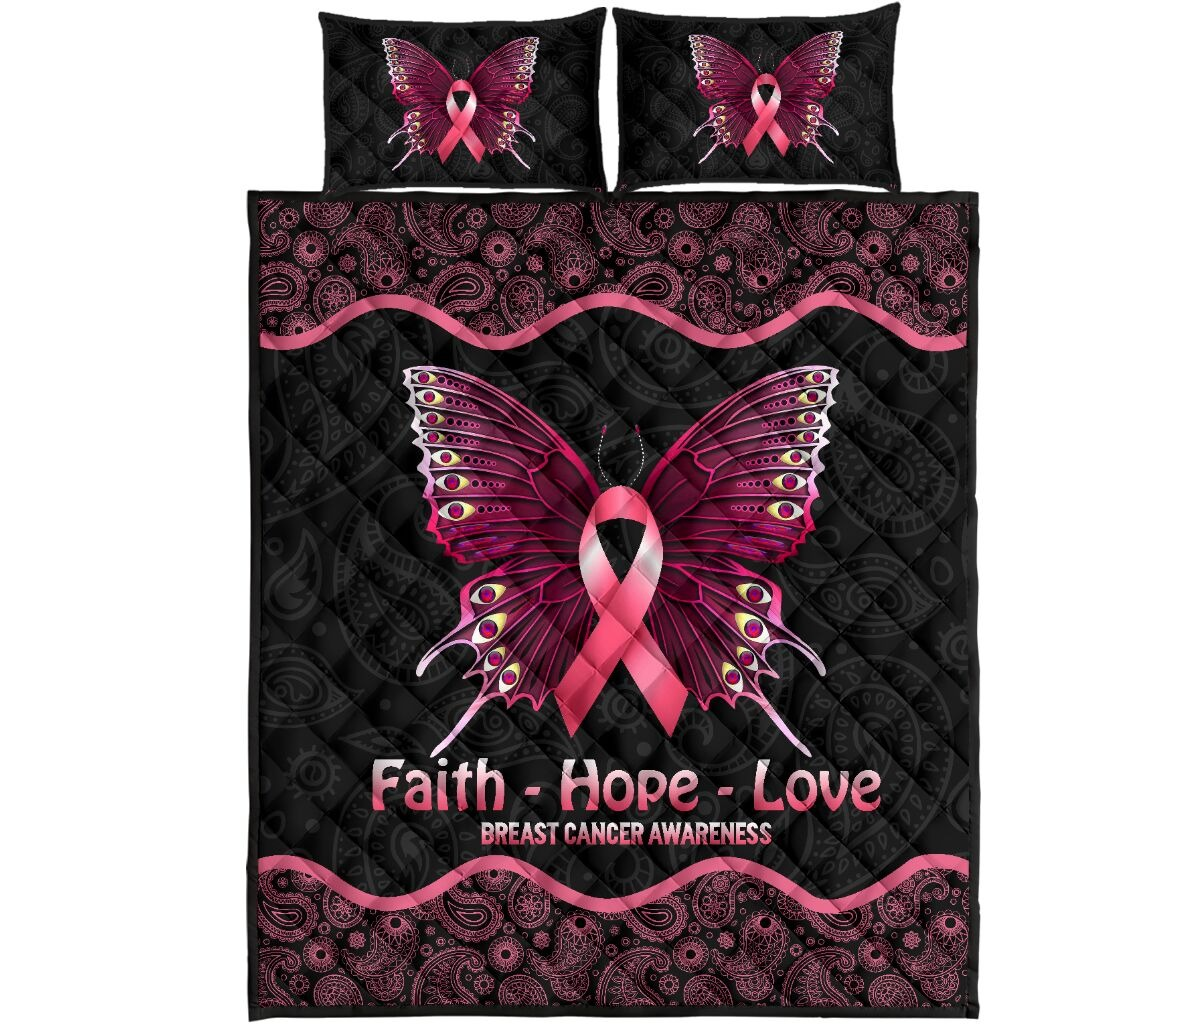 Butterfly faith hope love breast cancer awareness quilt bedding set 10